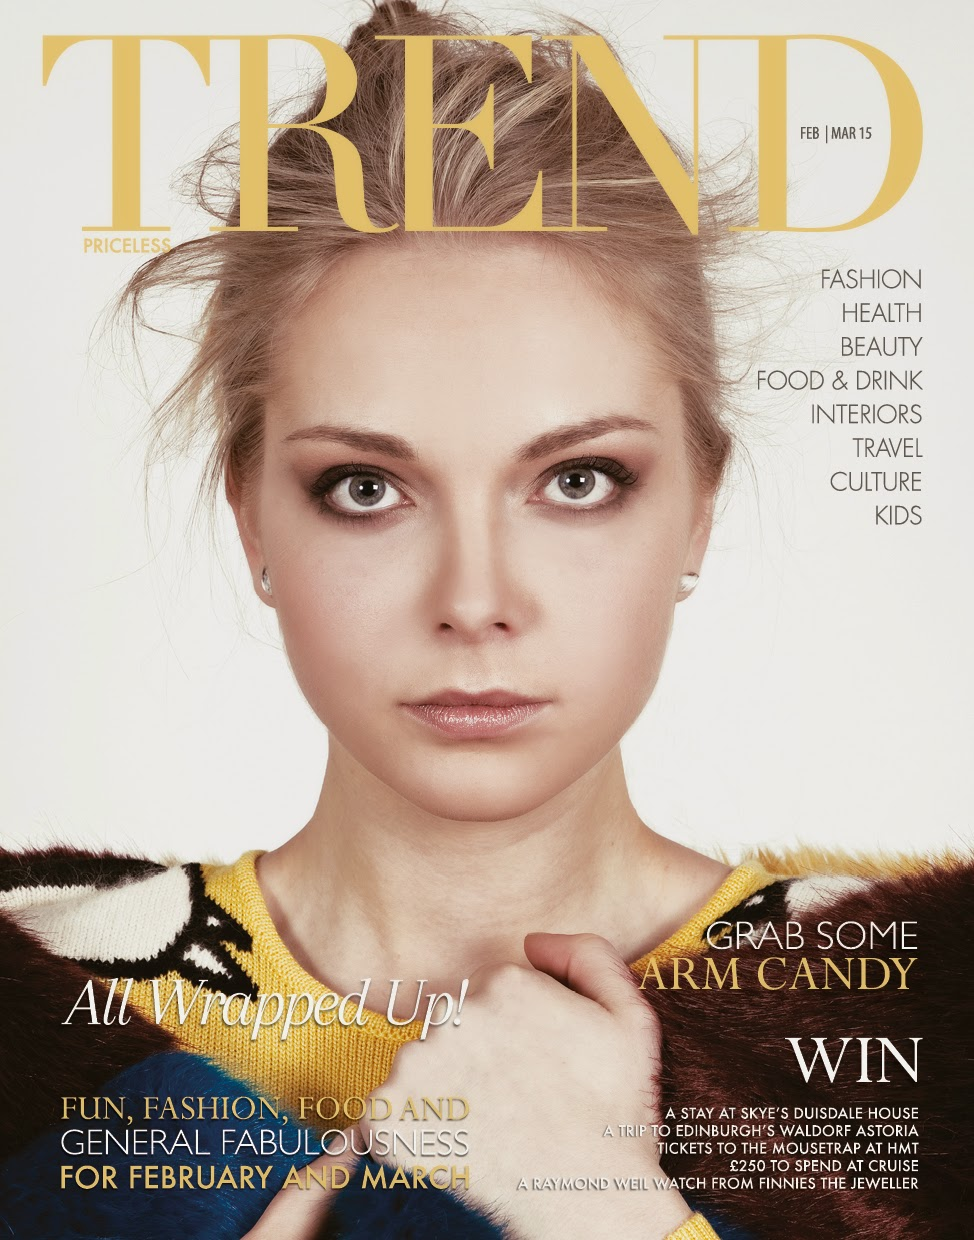 Front page for Trend Magazine, Aberdeen, wispy hair, texture.